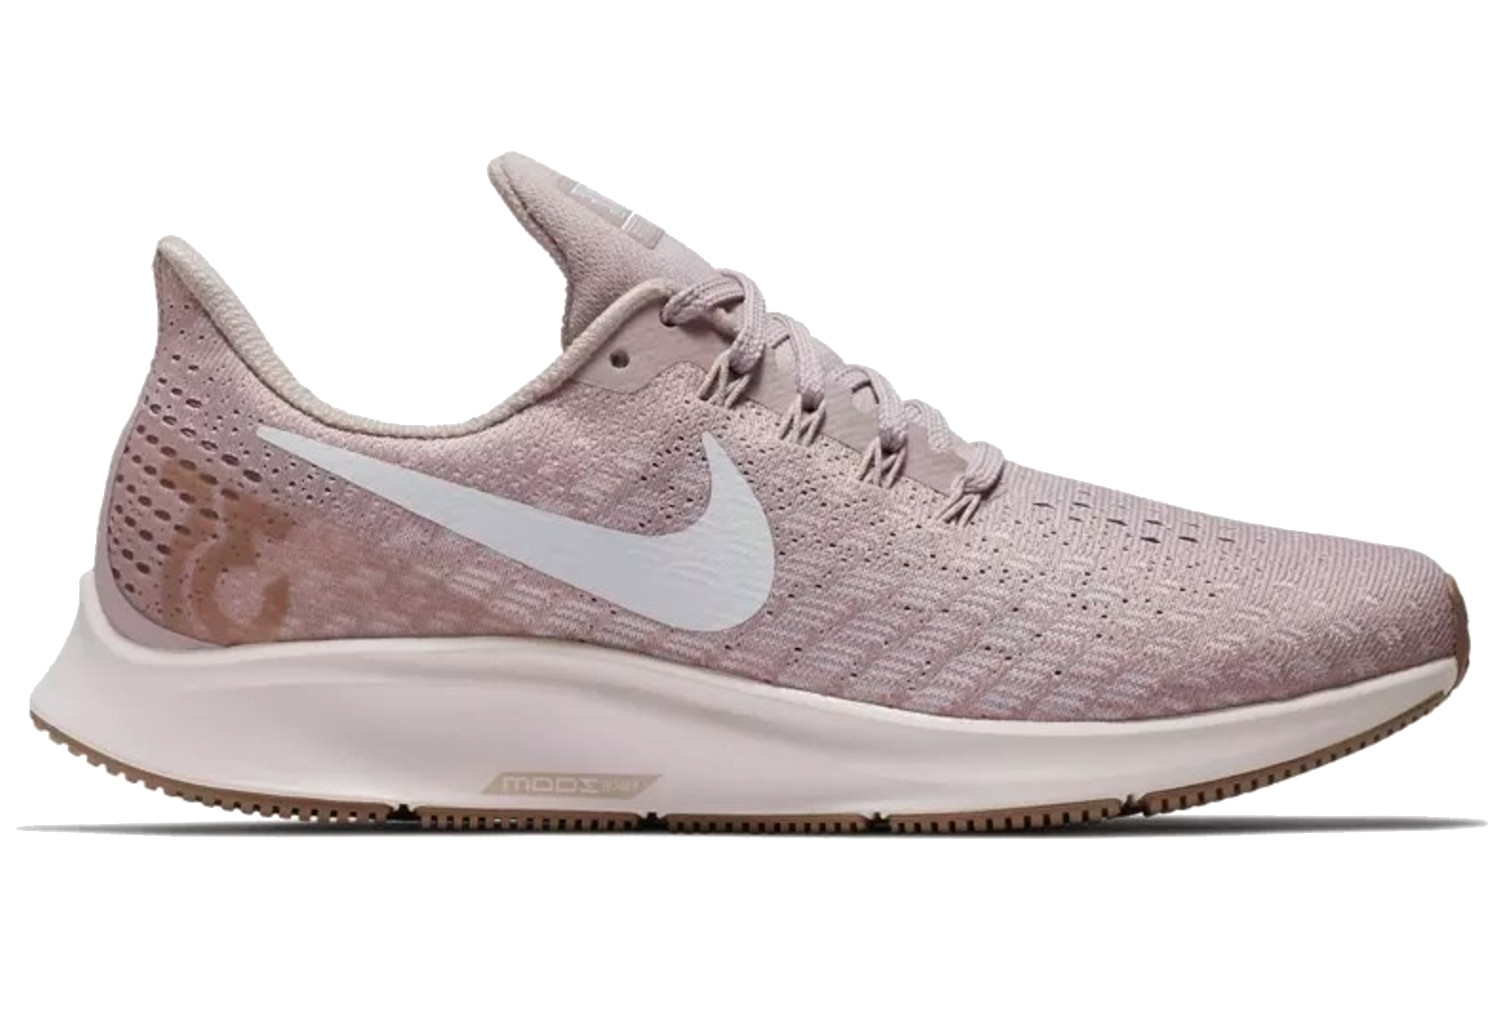 new arrivals a2bde 617f6 Chaussures de Running Femme Nike Air Zoom Pegasus 35 Rose